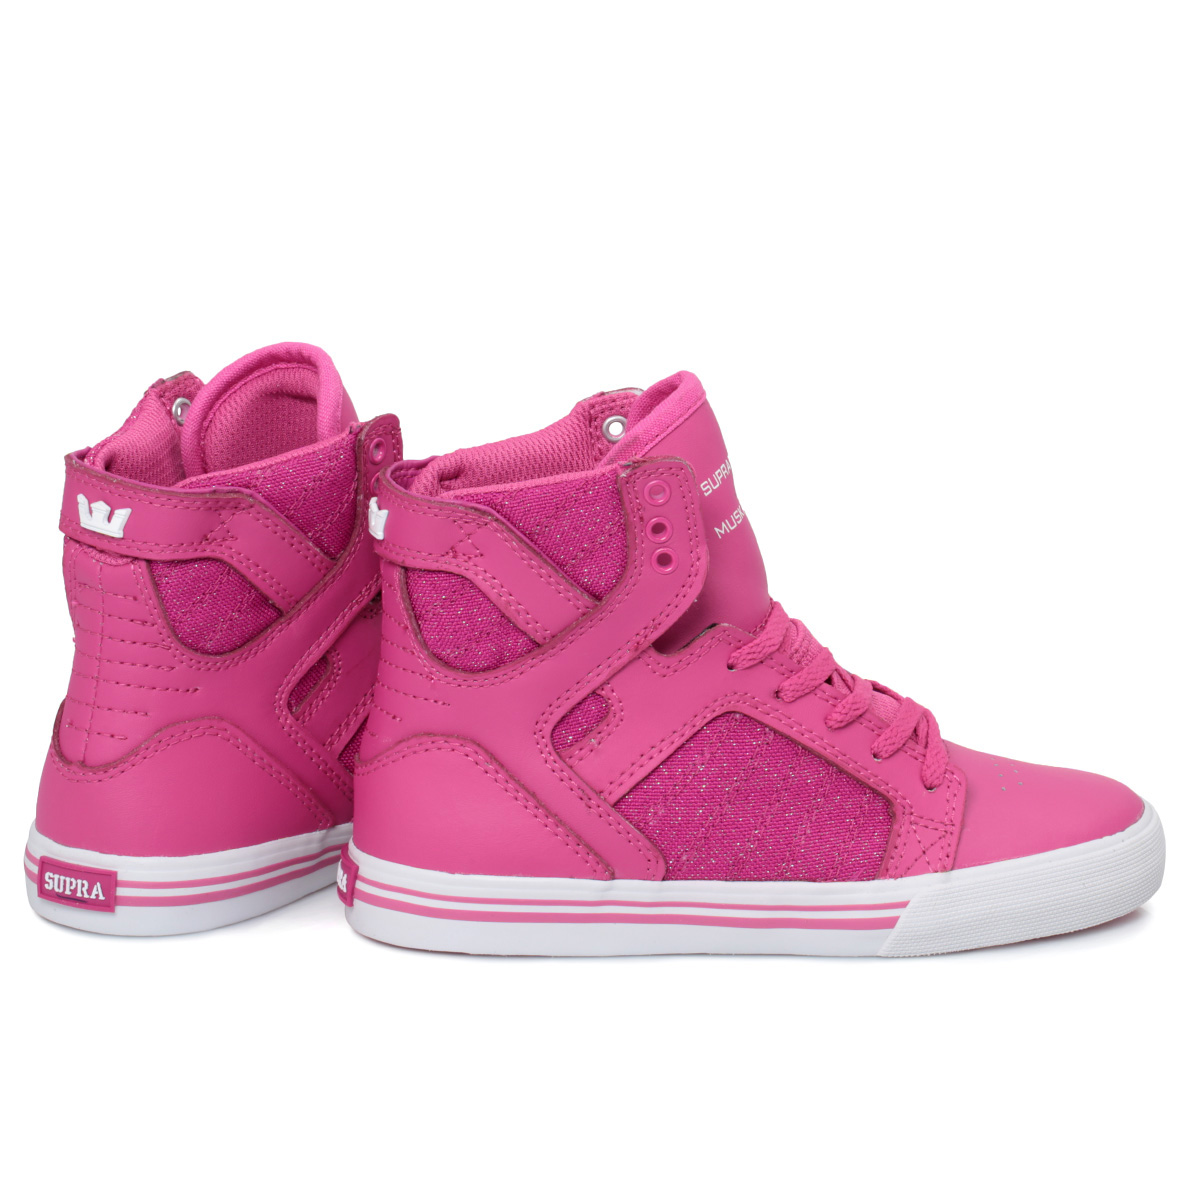 Kids High Tops Sale: Save Up to 60% Off! Shop coolzloadwok.ga's huge selection of High Tops for Kids - Over styles available. FREE Shipping & Exchanges, and a % price guarantee!